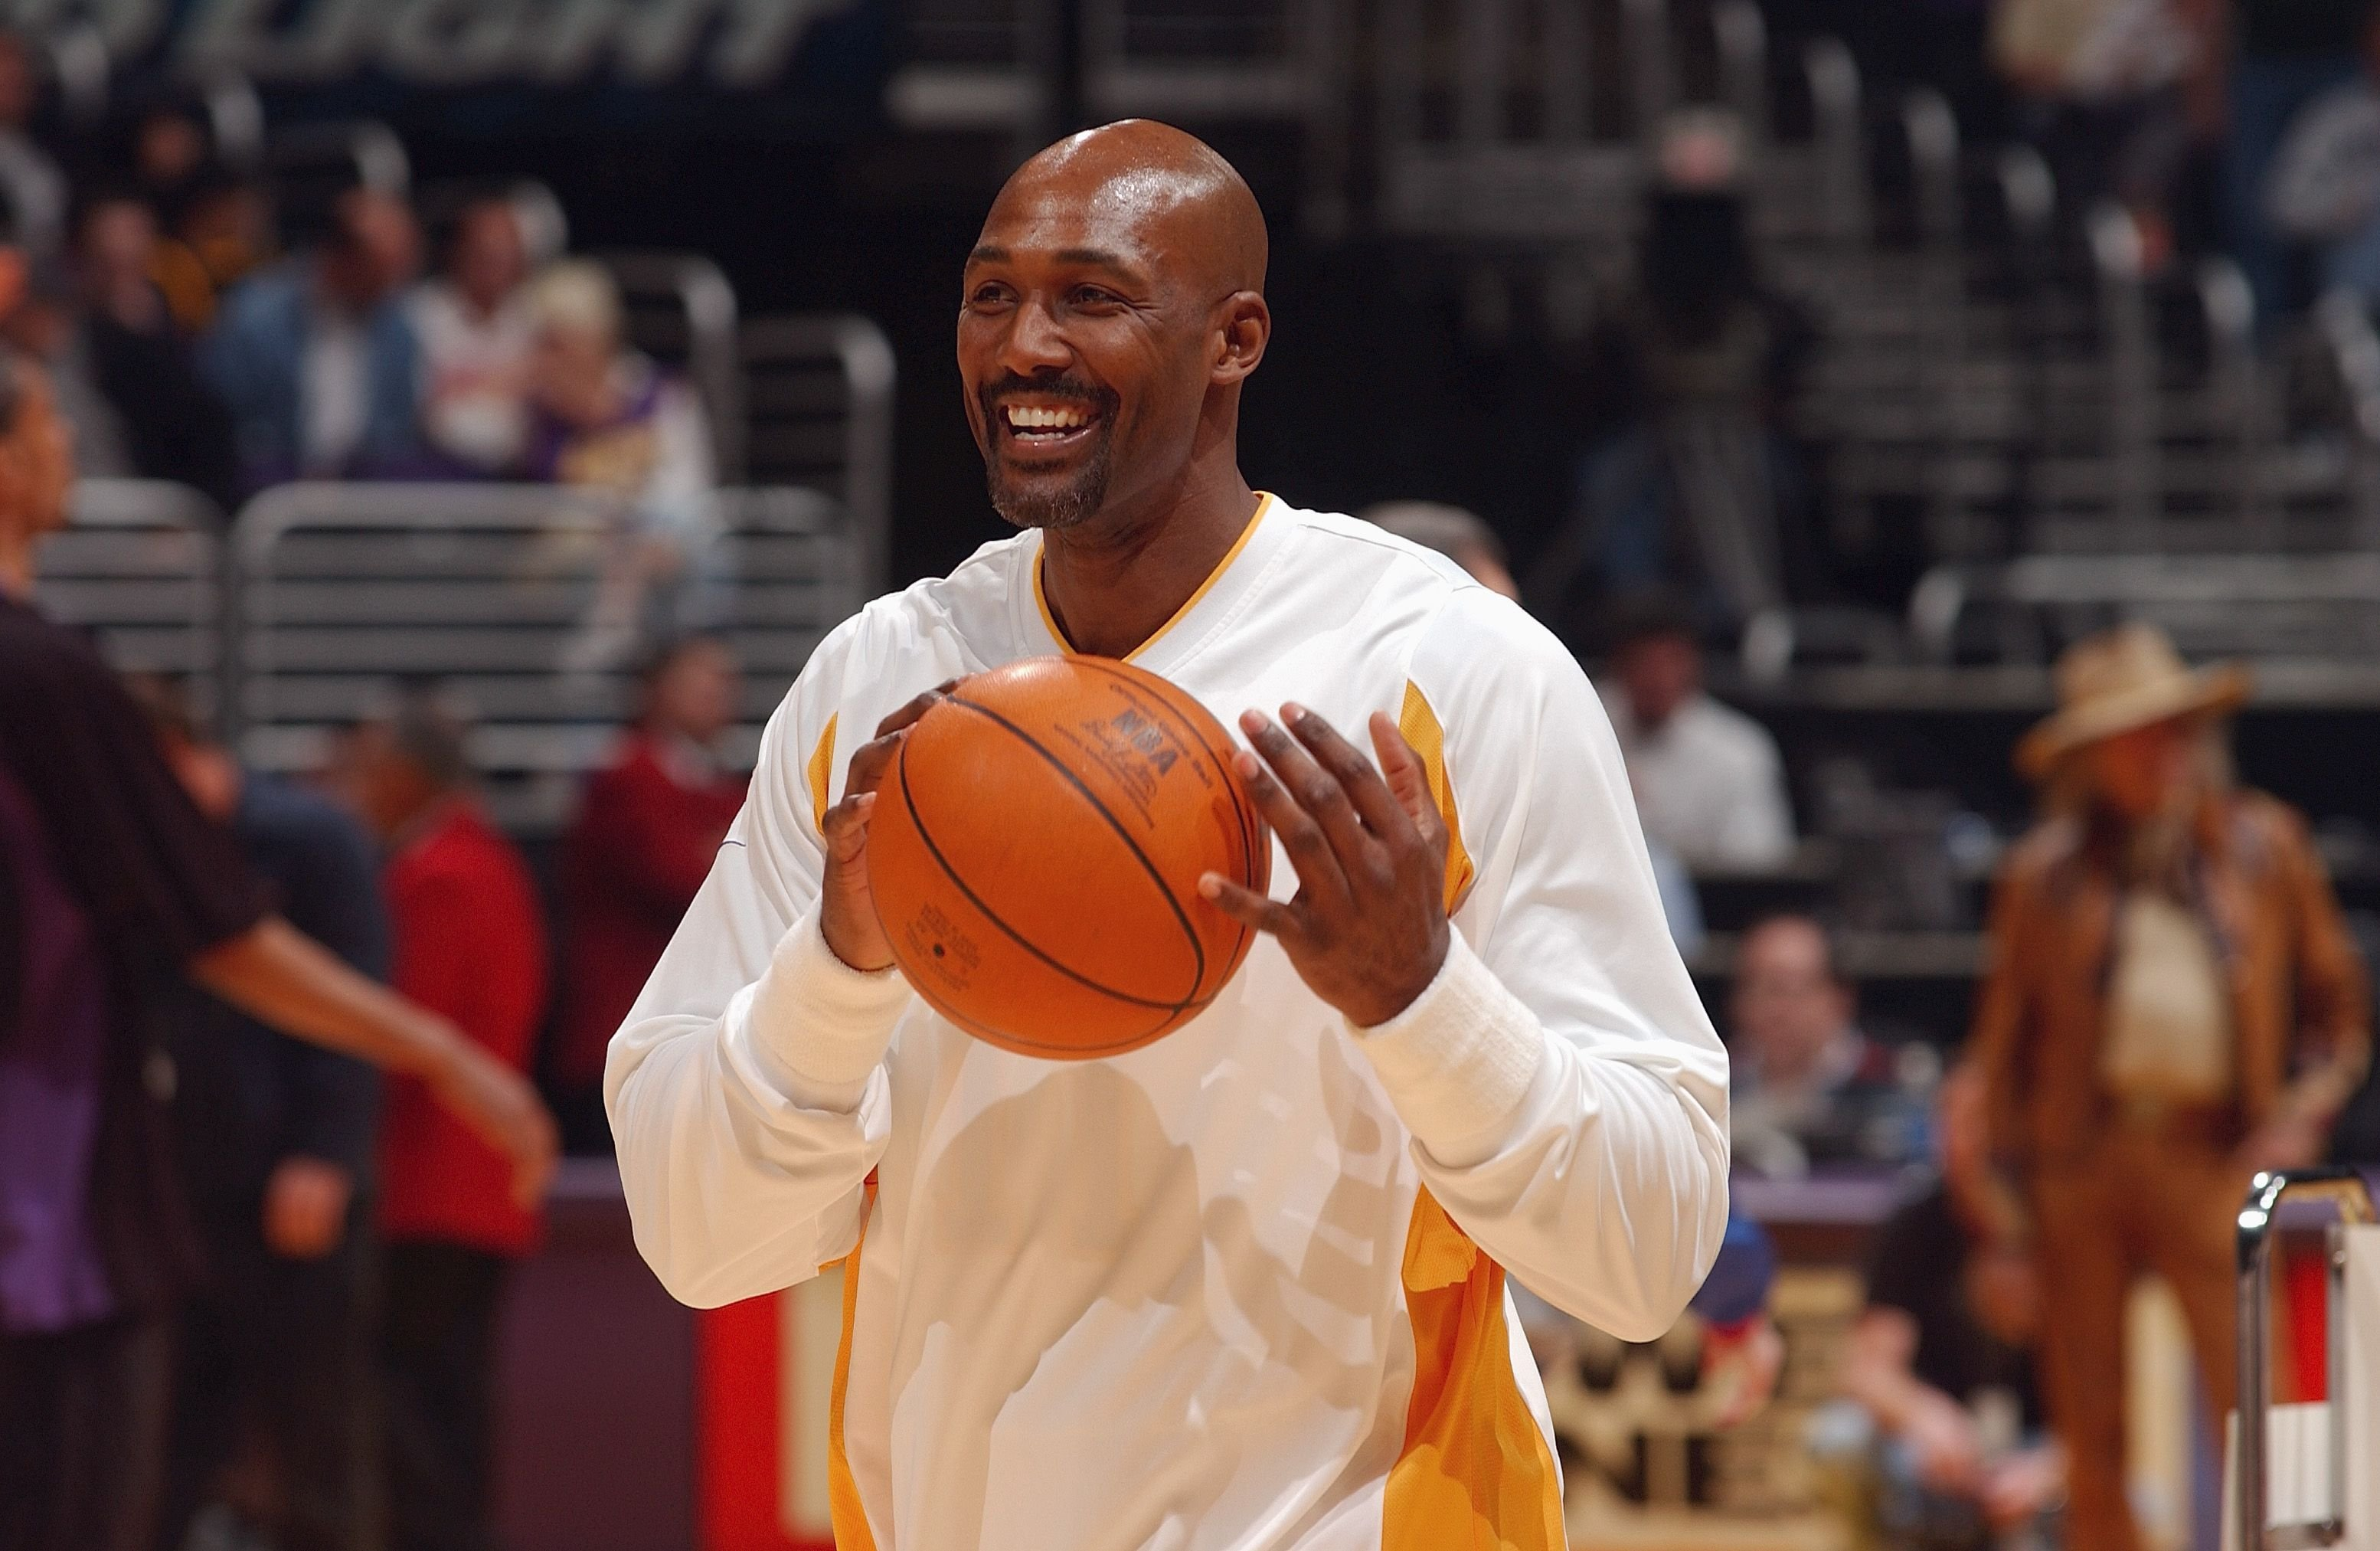 Karl Malone #11 of the Los Angeles Lakers smiles during a game on March 28, 2004 | Photo: Getty Images